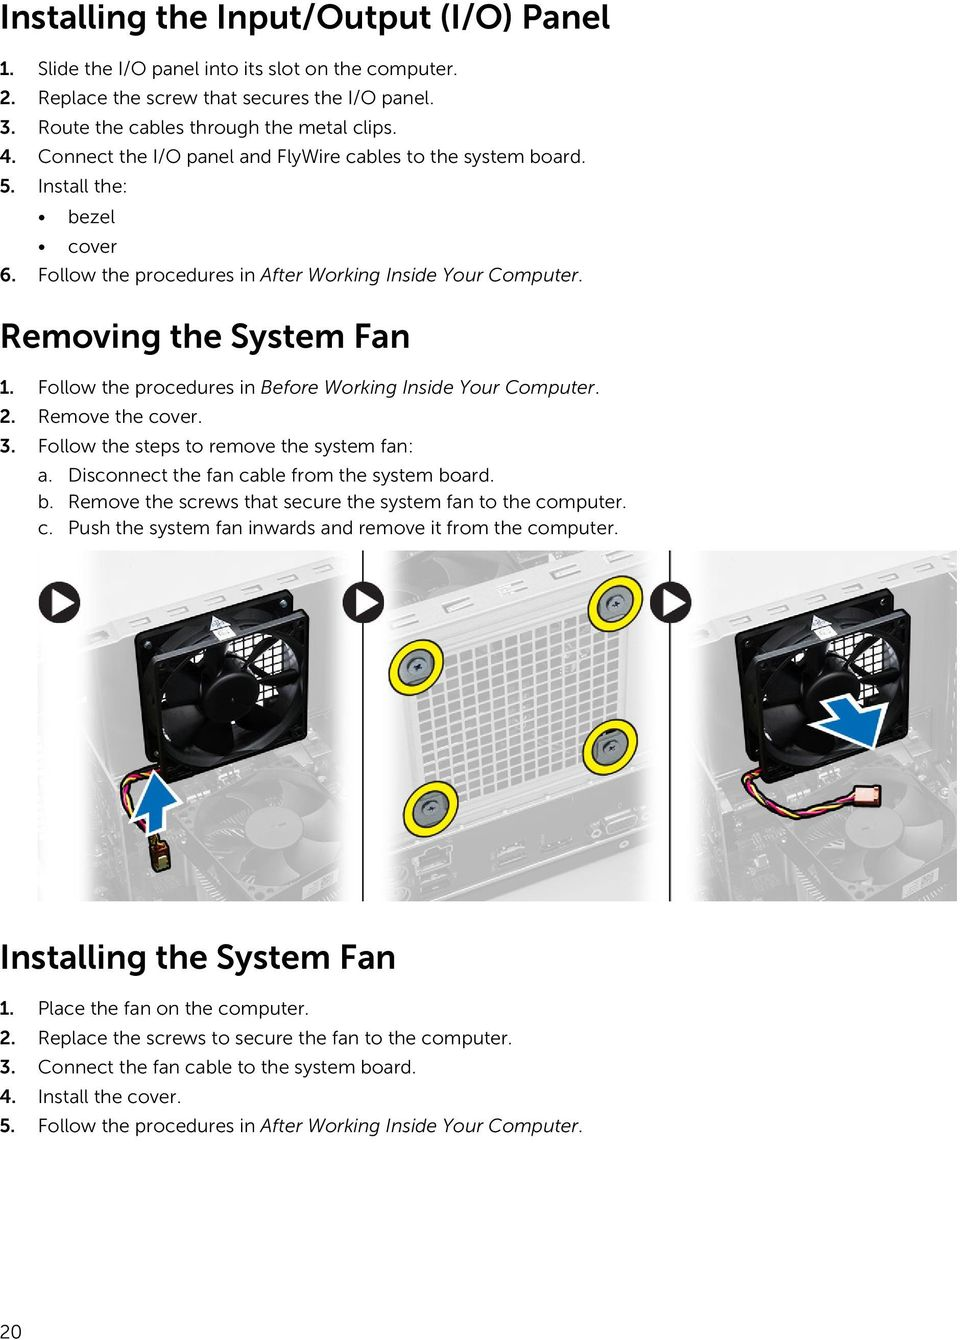 Follow the procedures in Before Working Inside Your Computer. 2. Remove the cover. 3. Follow the steps to remove the system fan: a. Disconnect the fan cable from the system bo